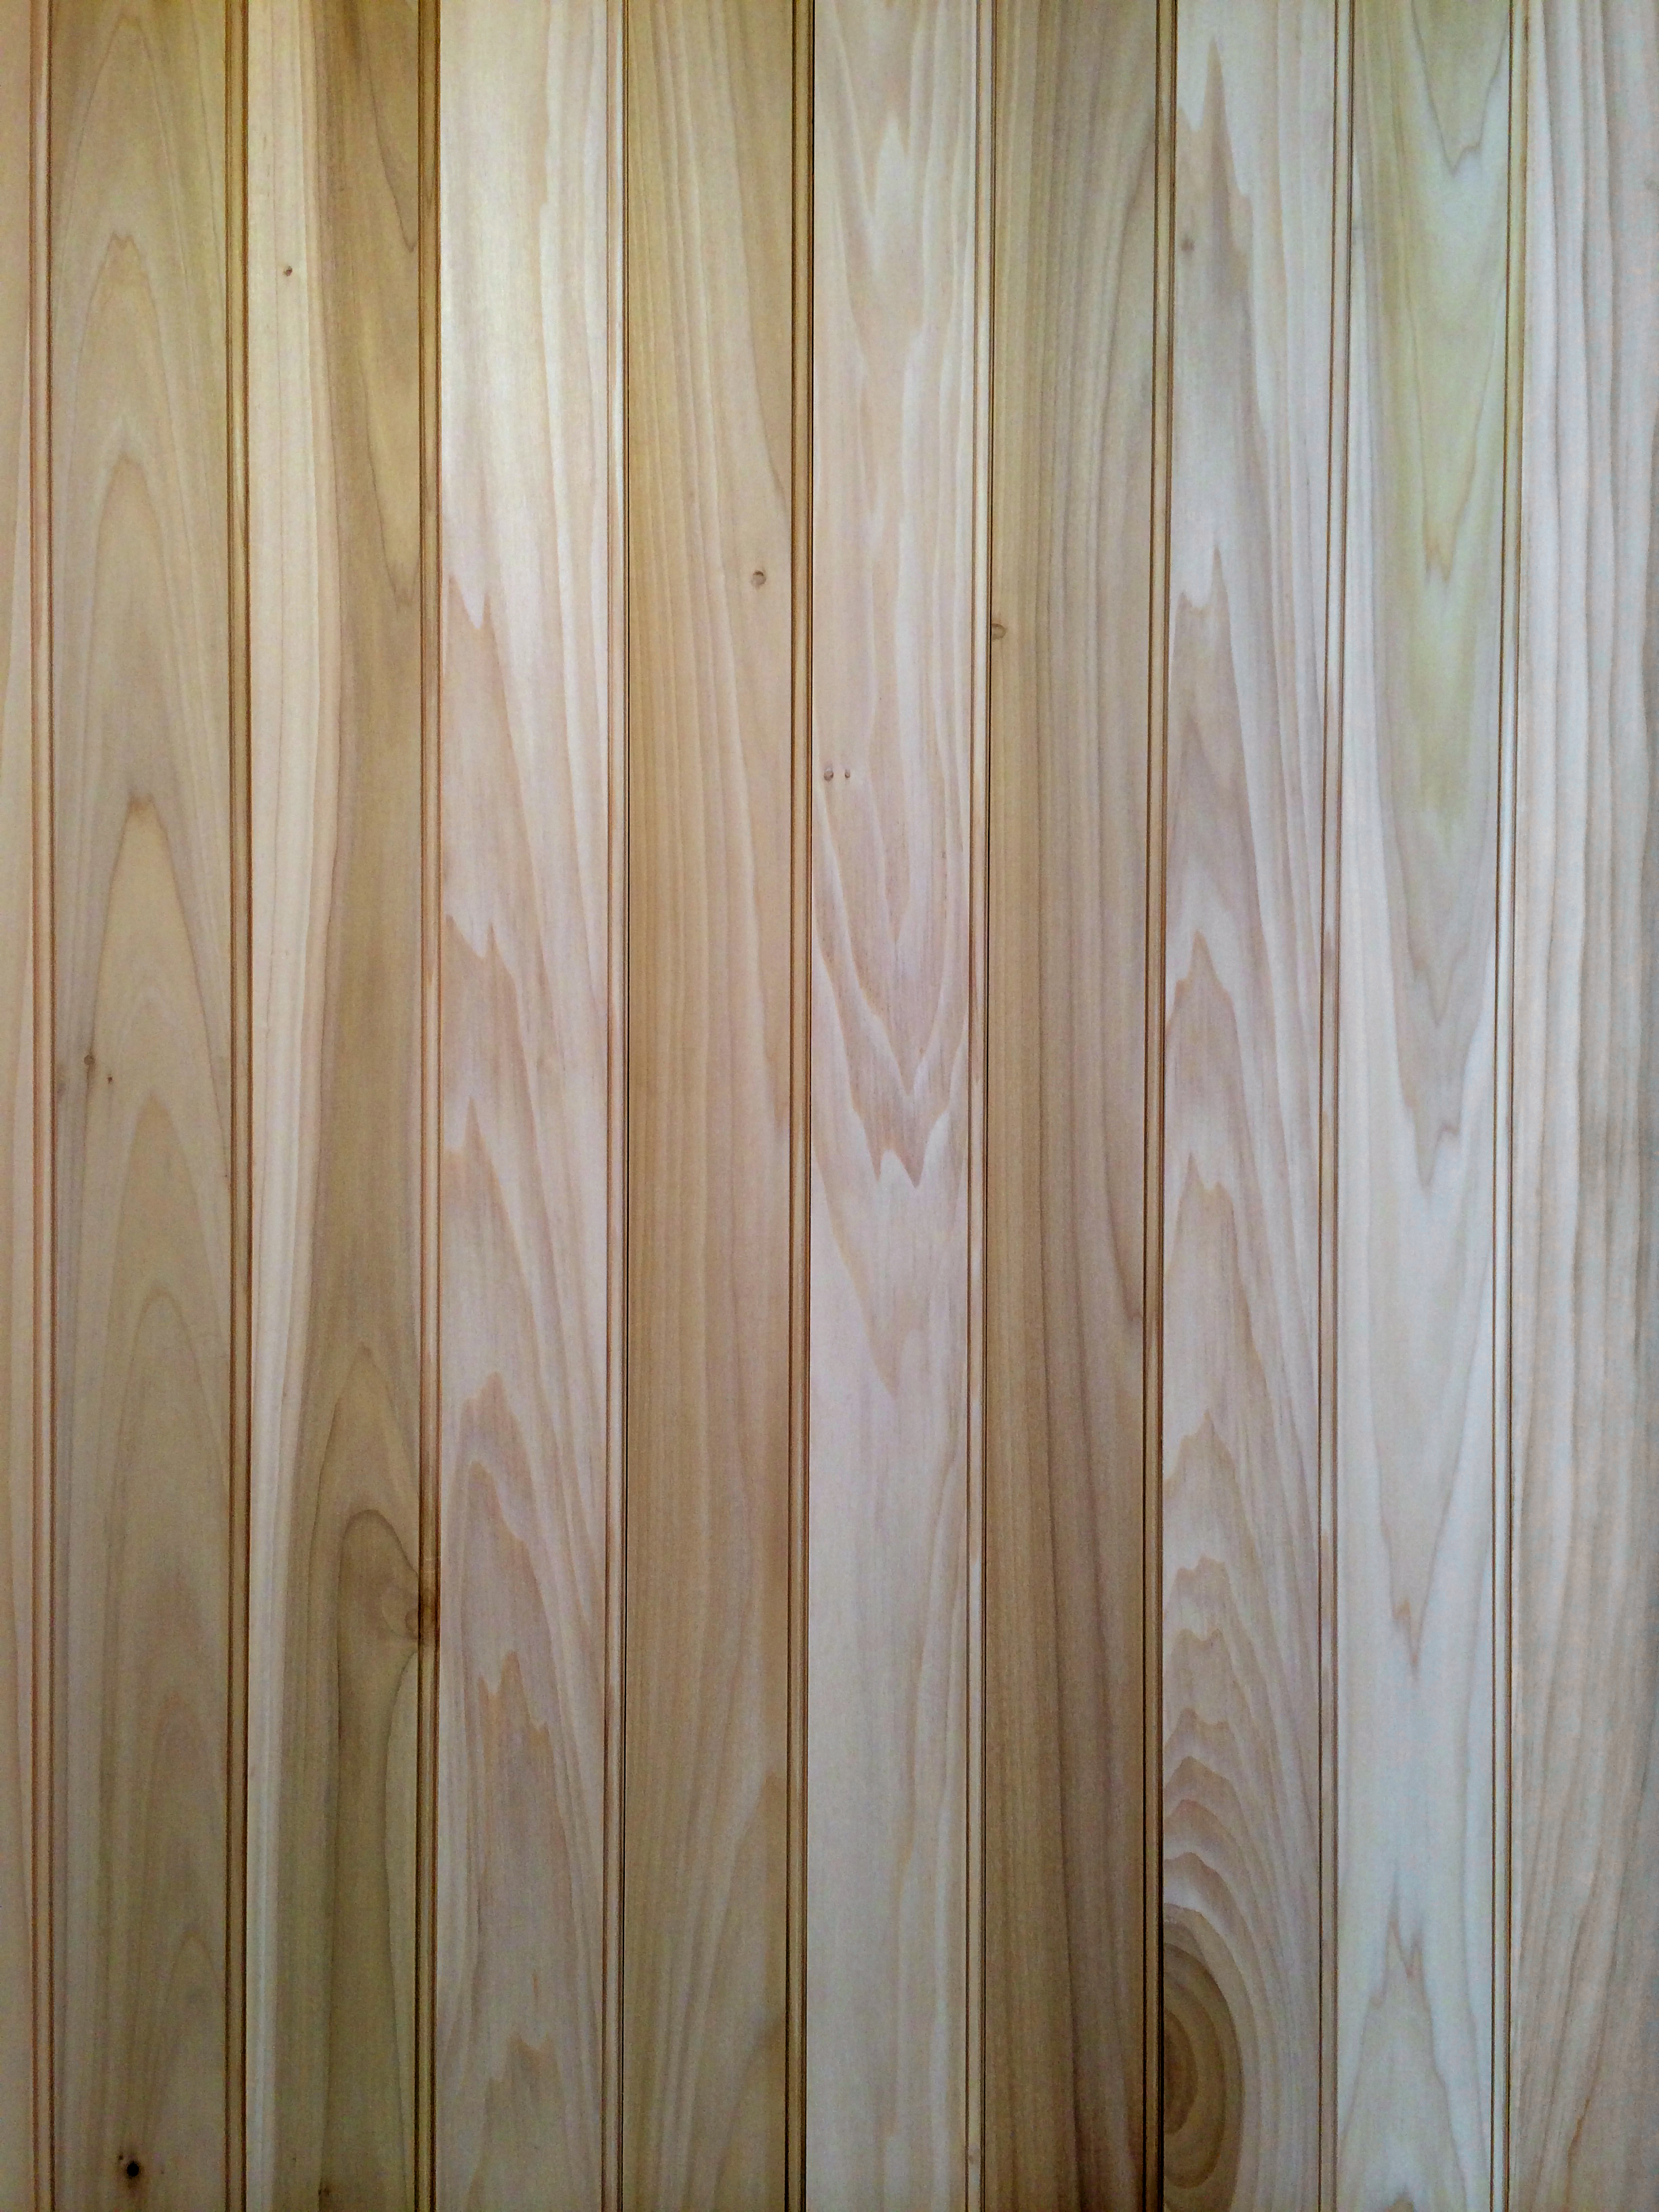 1x6 Yellow Pine Flooring Sq Ft Smoky Mountain Wood